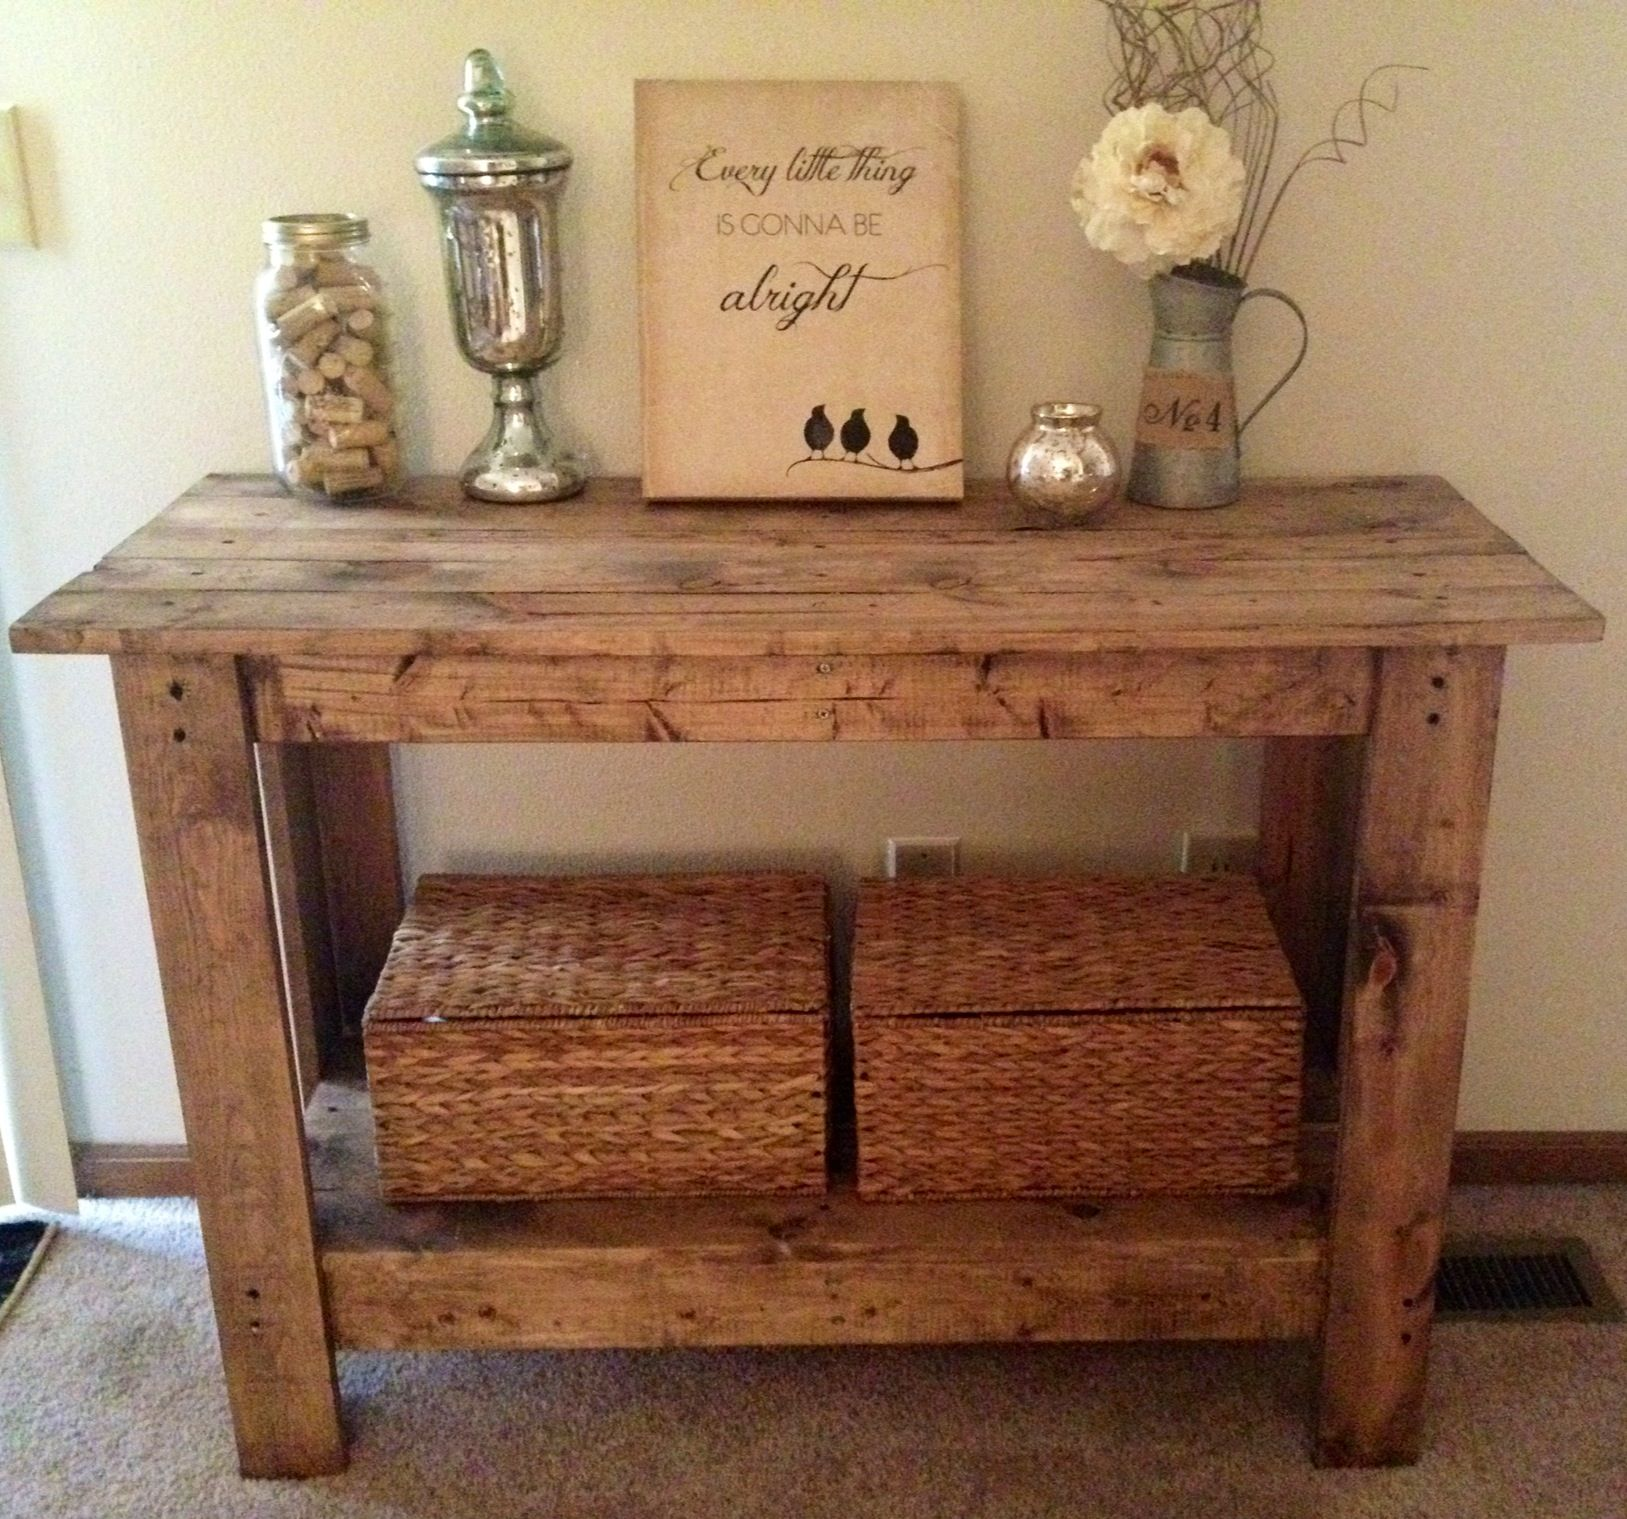 Sofa Tables Pinterest Polyester Studio Sleeper Rustic Console Table For The Home